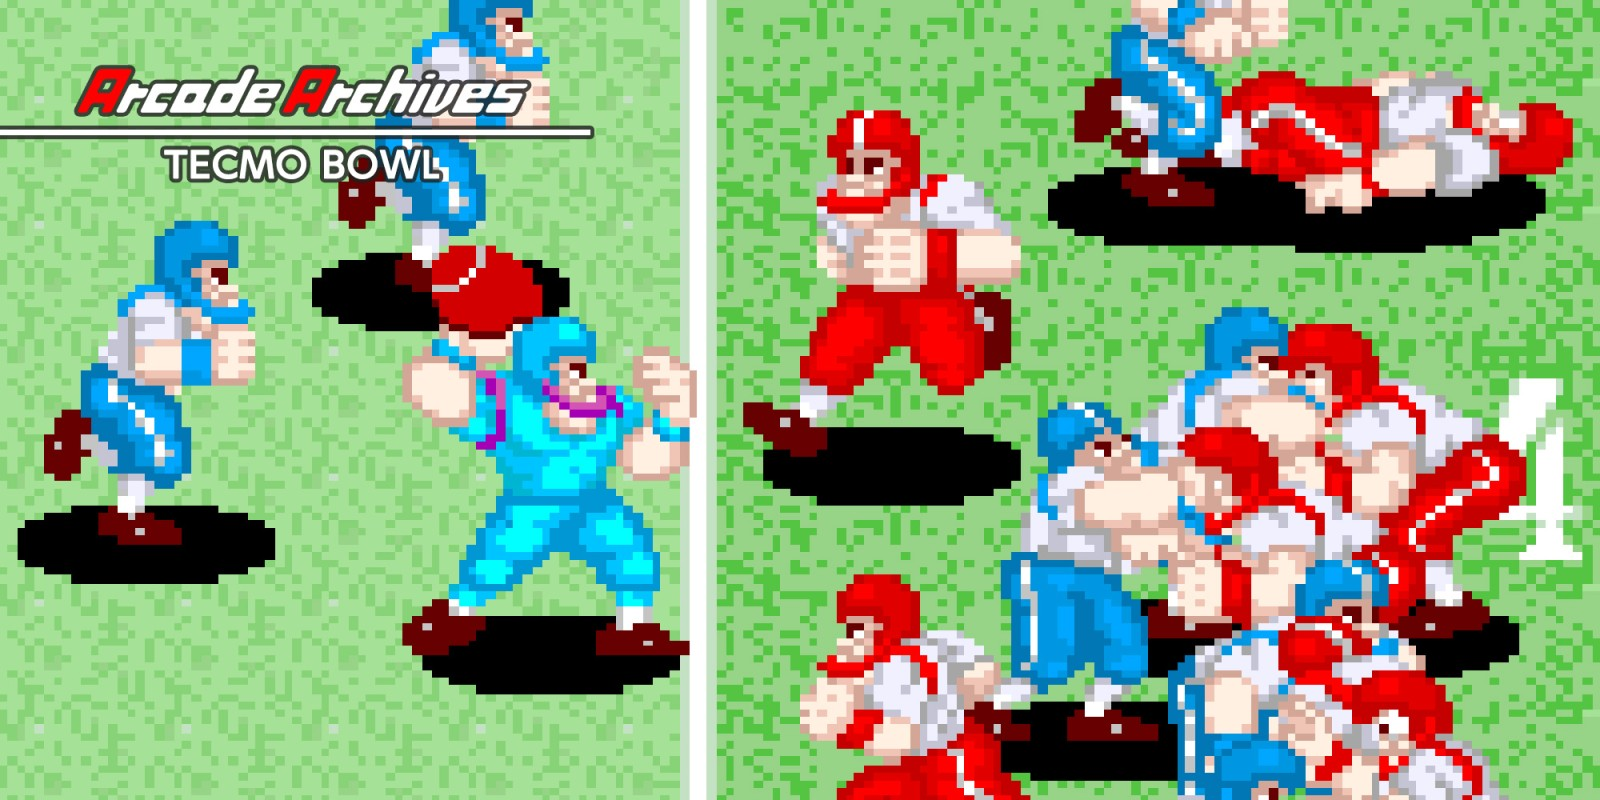 Arcade Archives TECMO BOWL